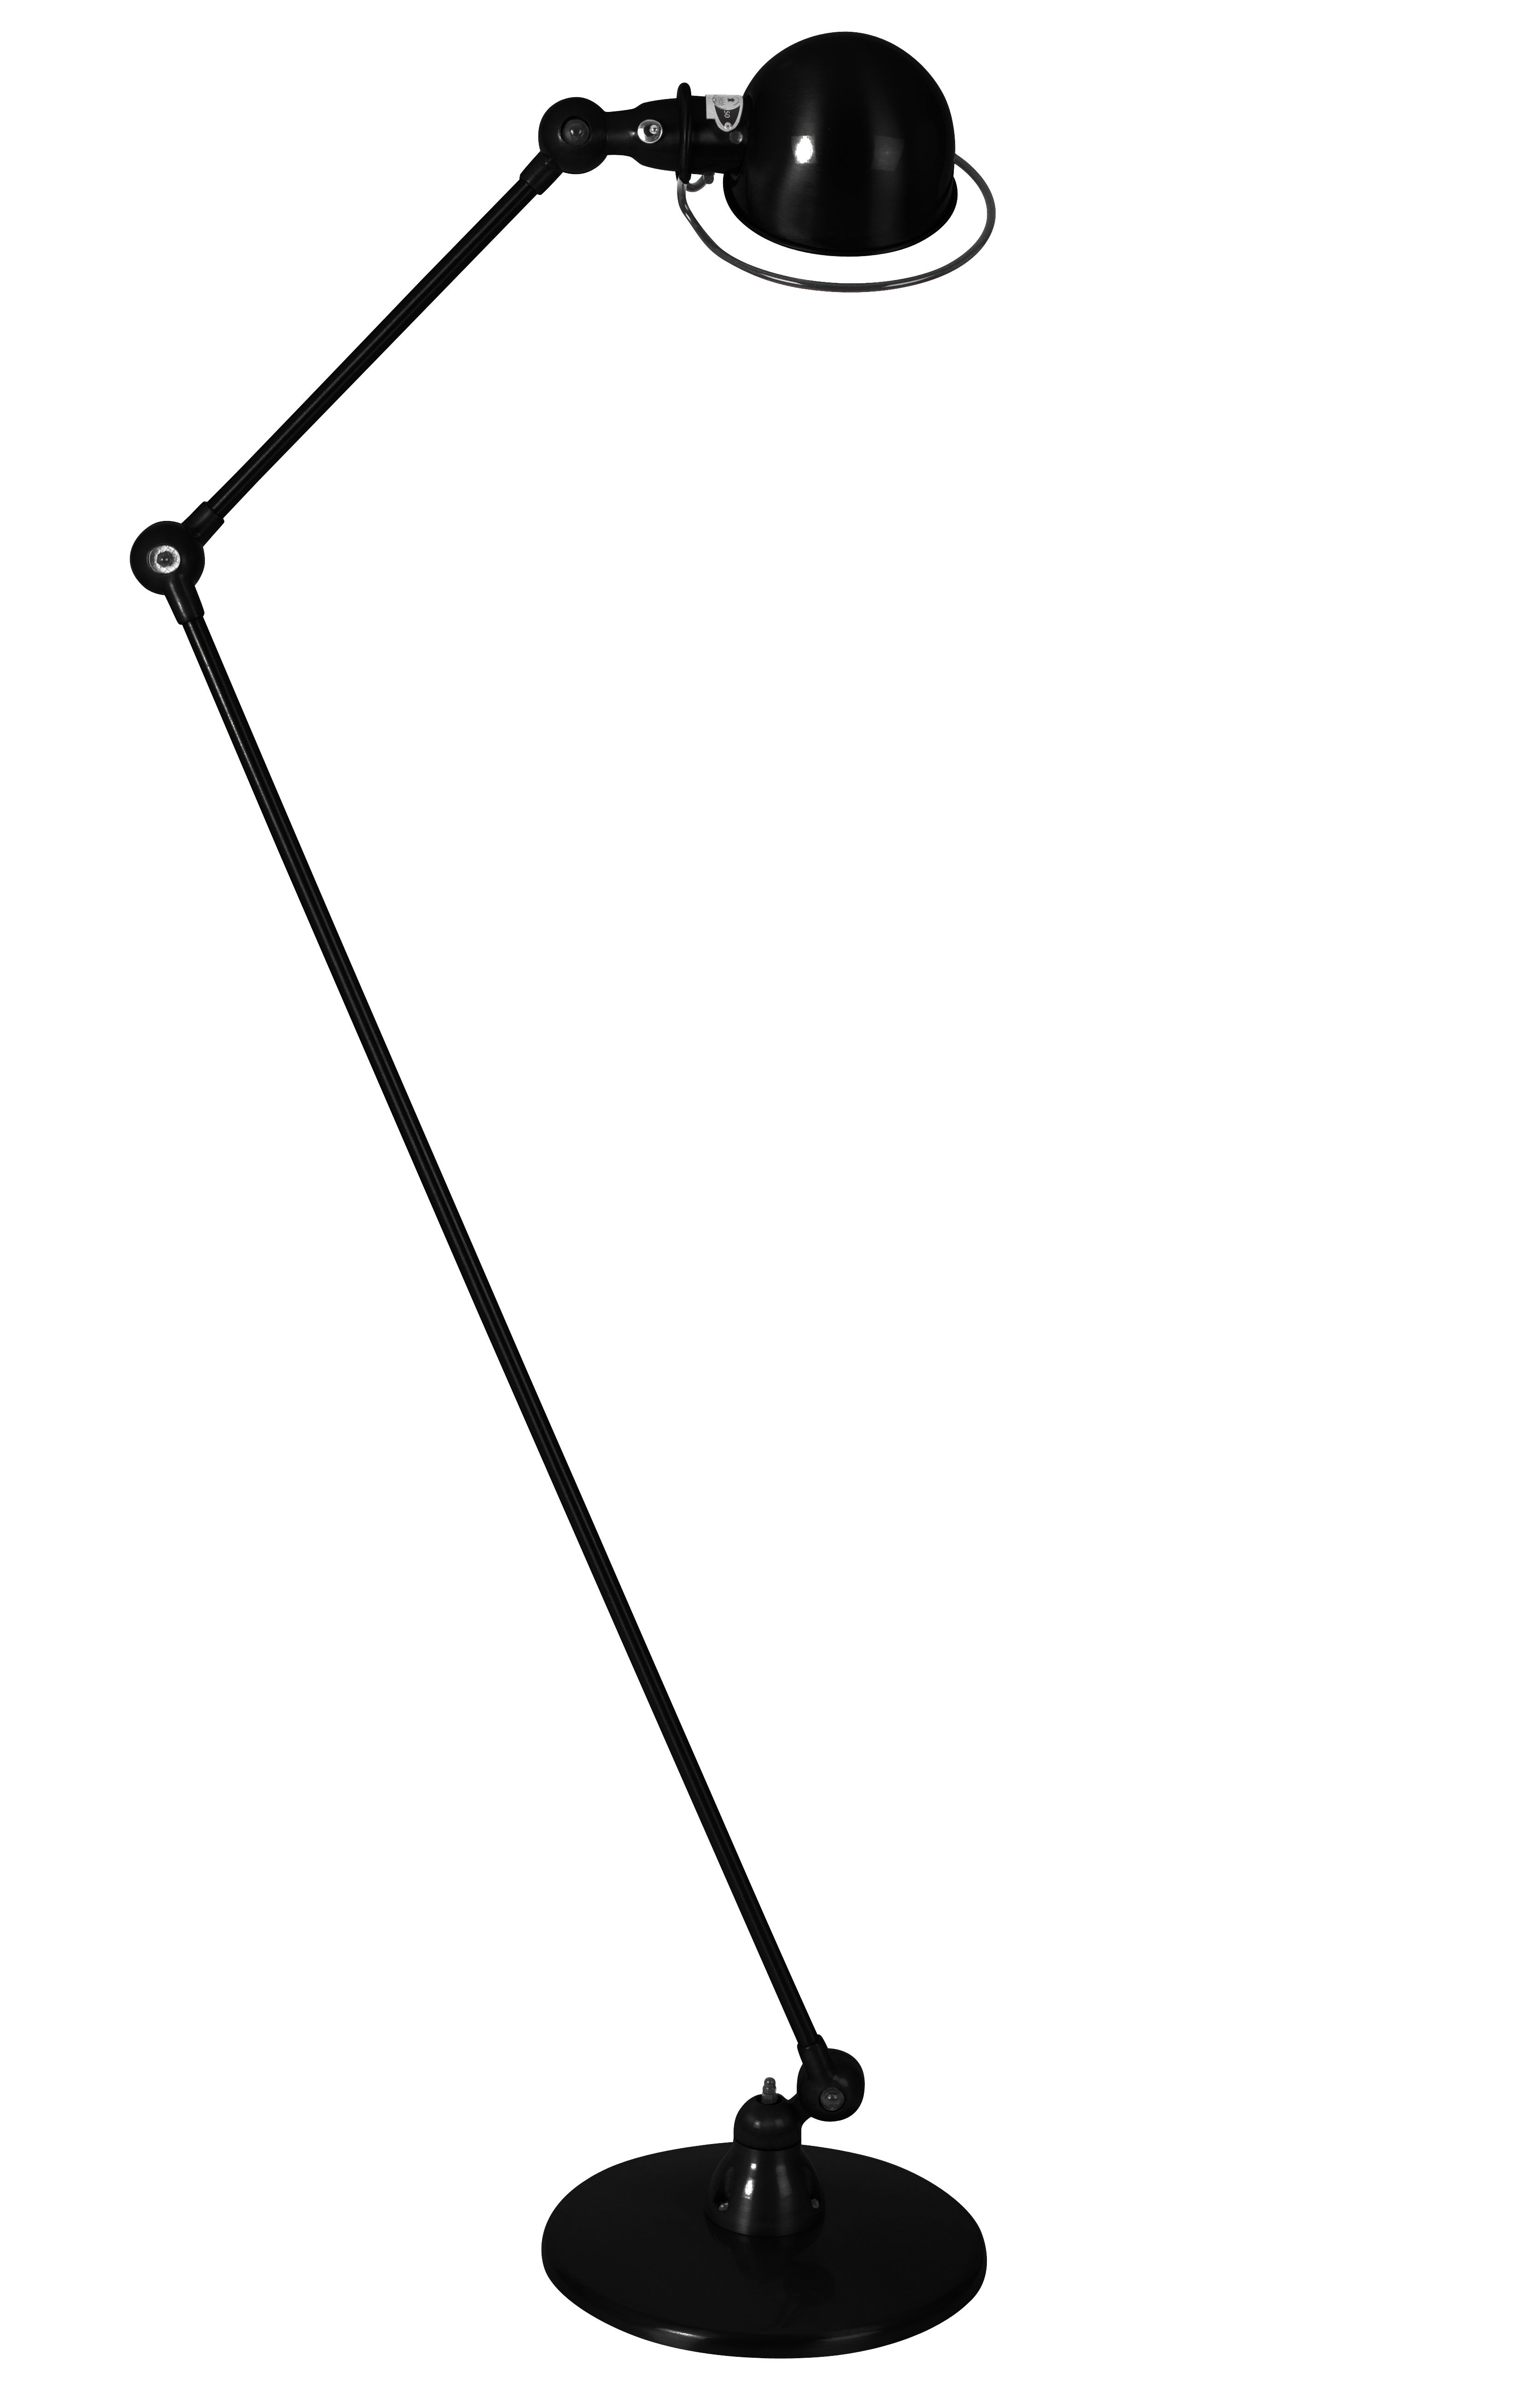 loft floor lamp 2 arms h max 160 cm matt black by jield made in design uk. Black Bedroom Furniture Sets. Home Design Ideas